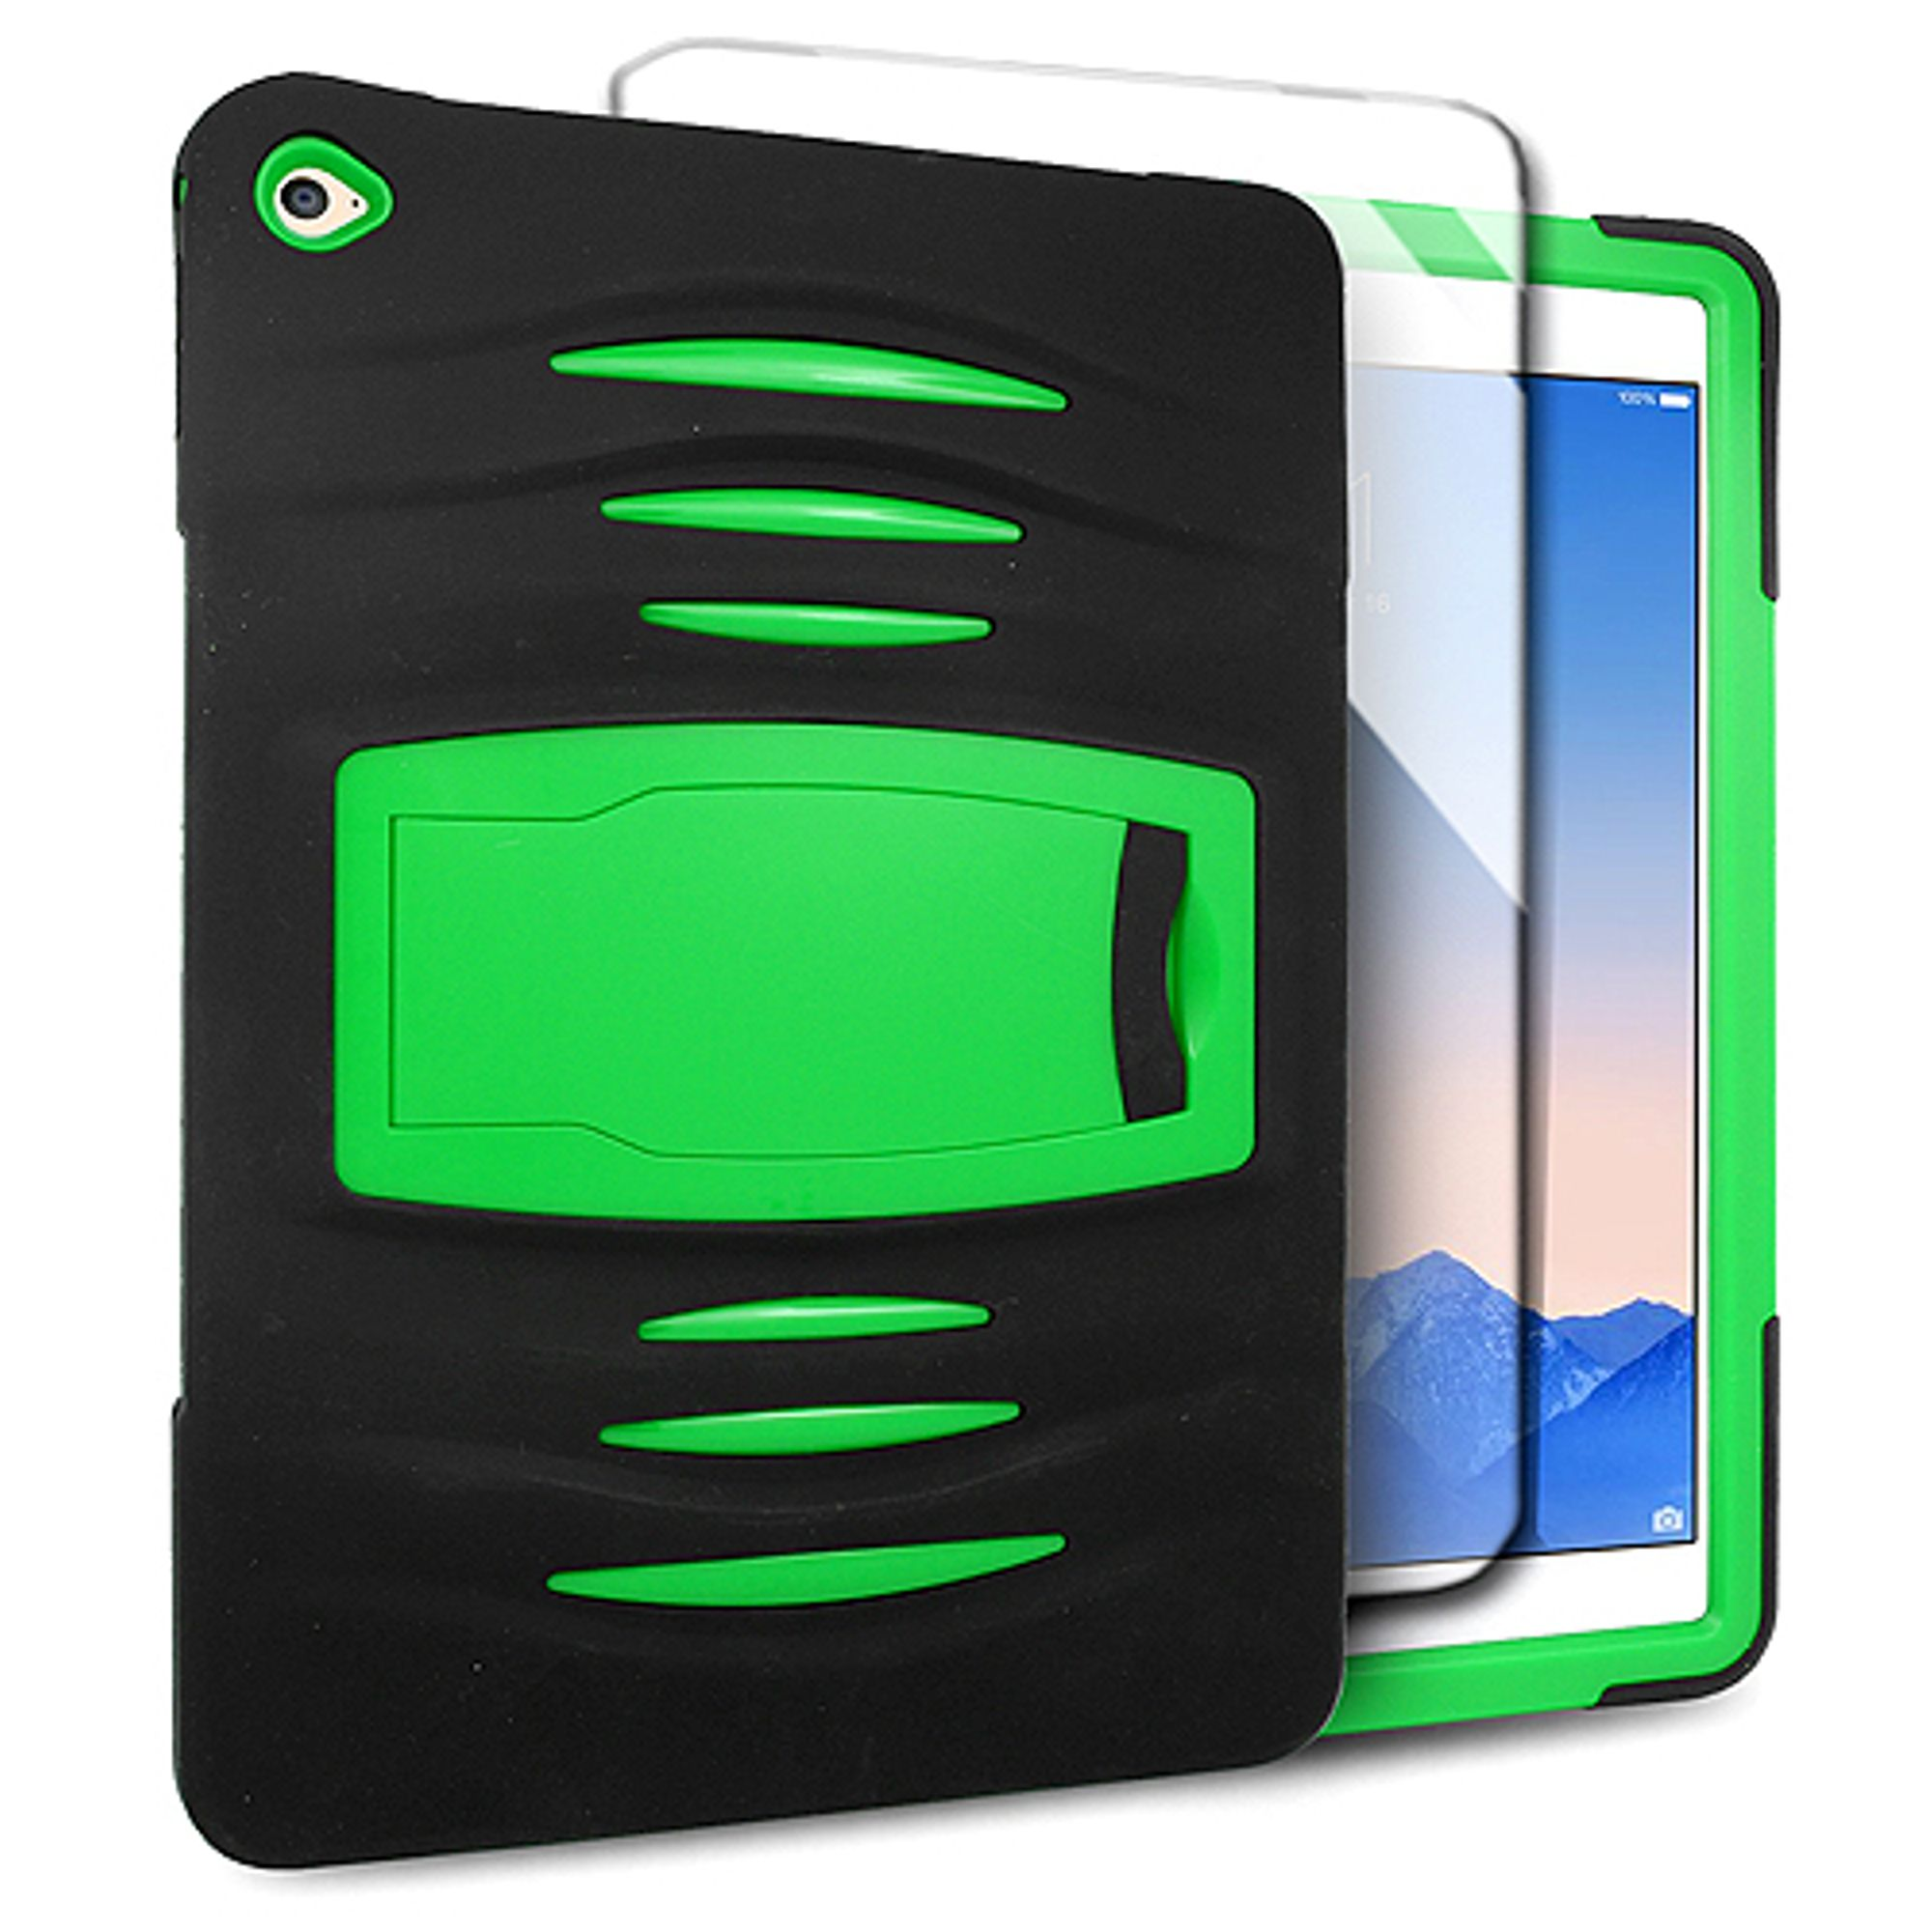 iPad Air 2 Case, by Insten Dual Layer [Shock Absorbing] Hybrid Stand Rubber Silicone/Plastic Case Cover For Apple iPad Air 2